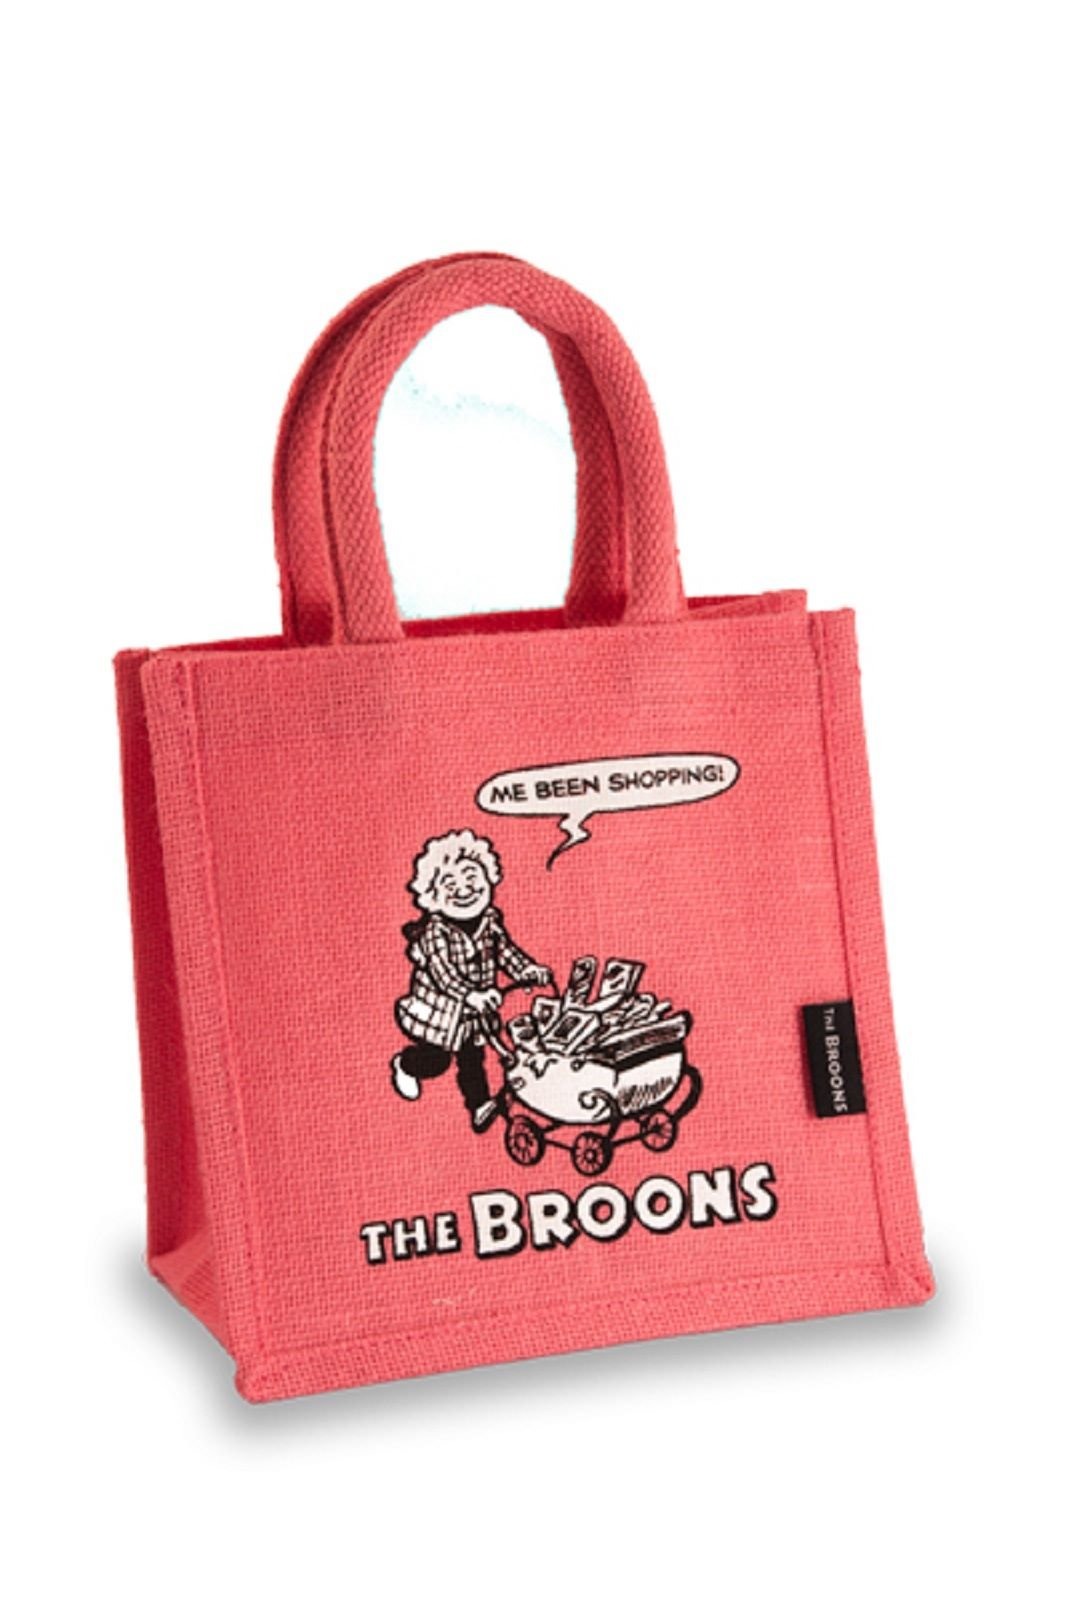 The Bairn - Cute Small Shopping Bag - Gift Bag - The Broons